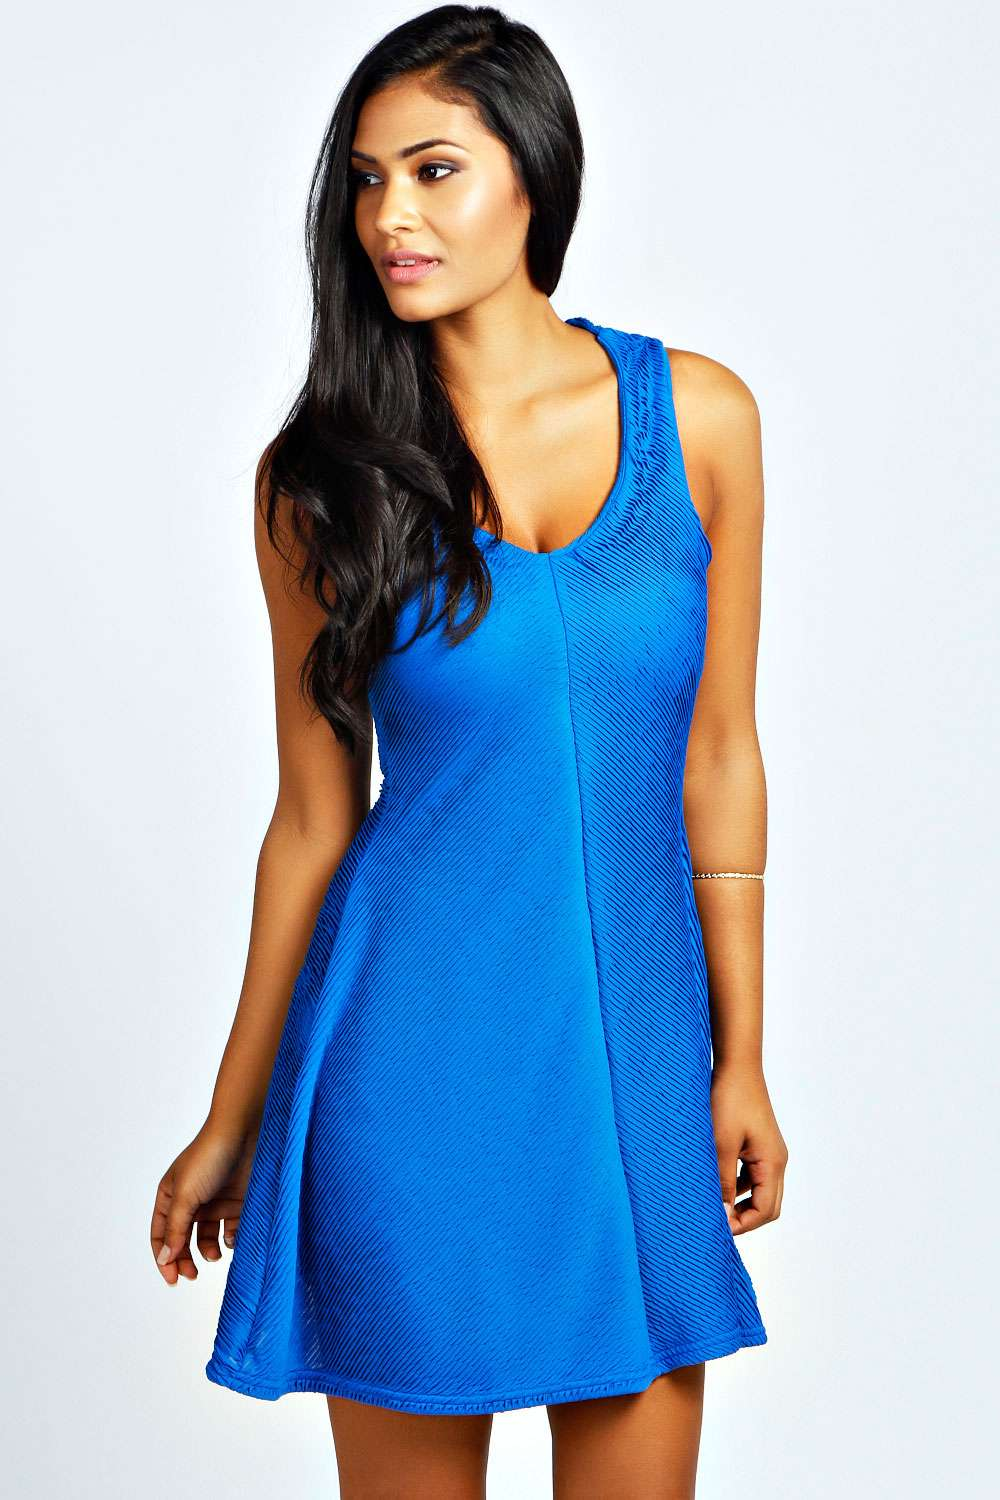 boohoo Laura Textured Skater Dress - cobalt product image